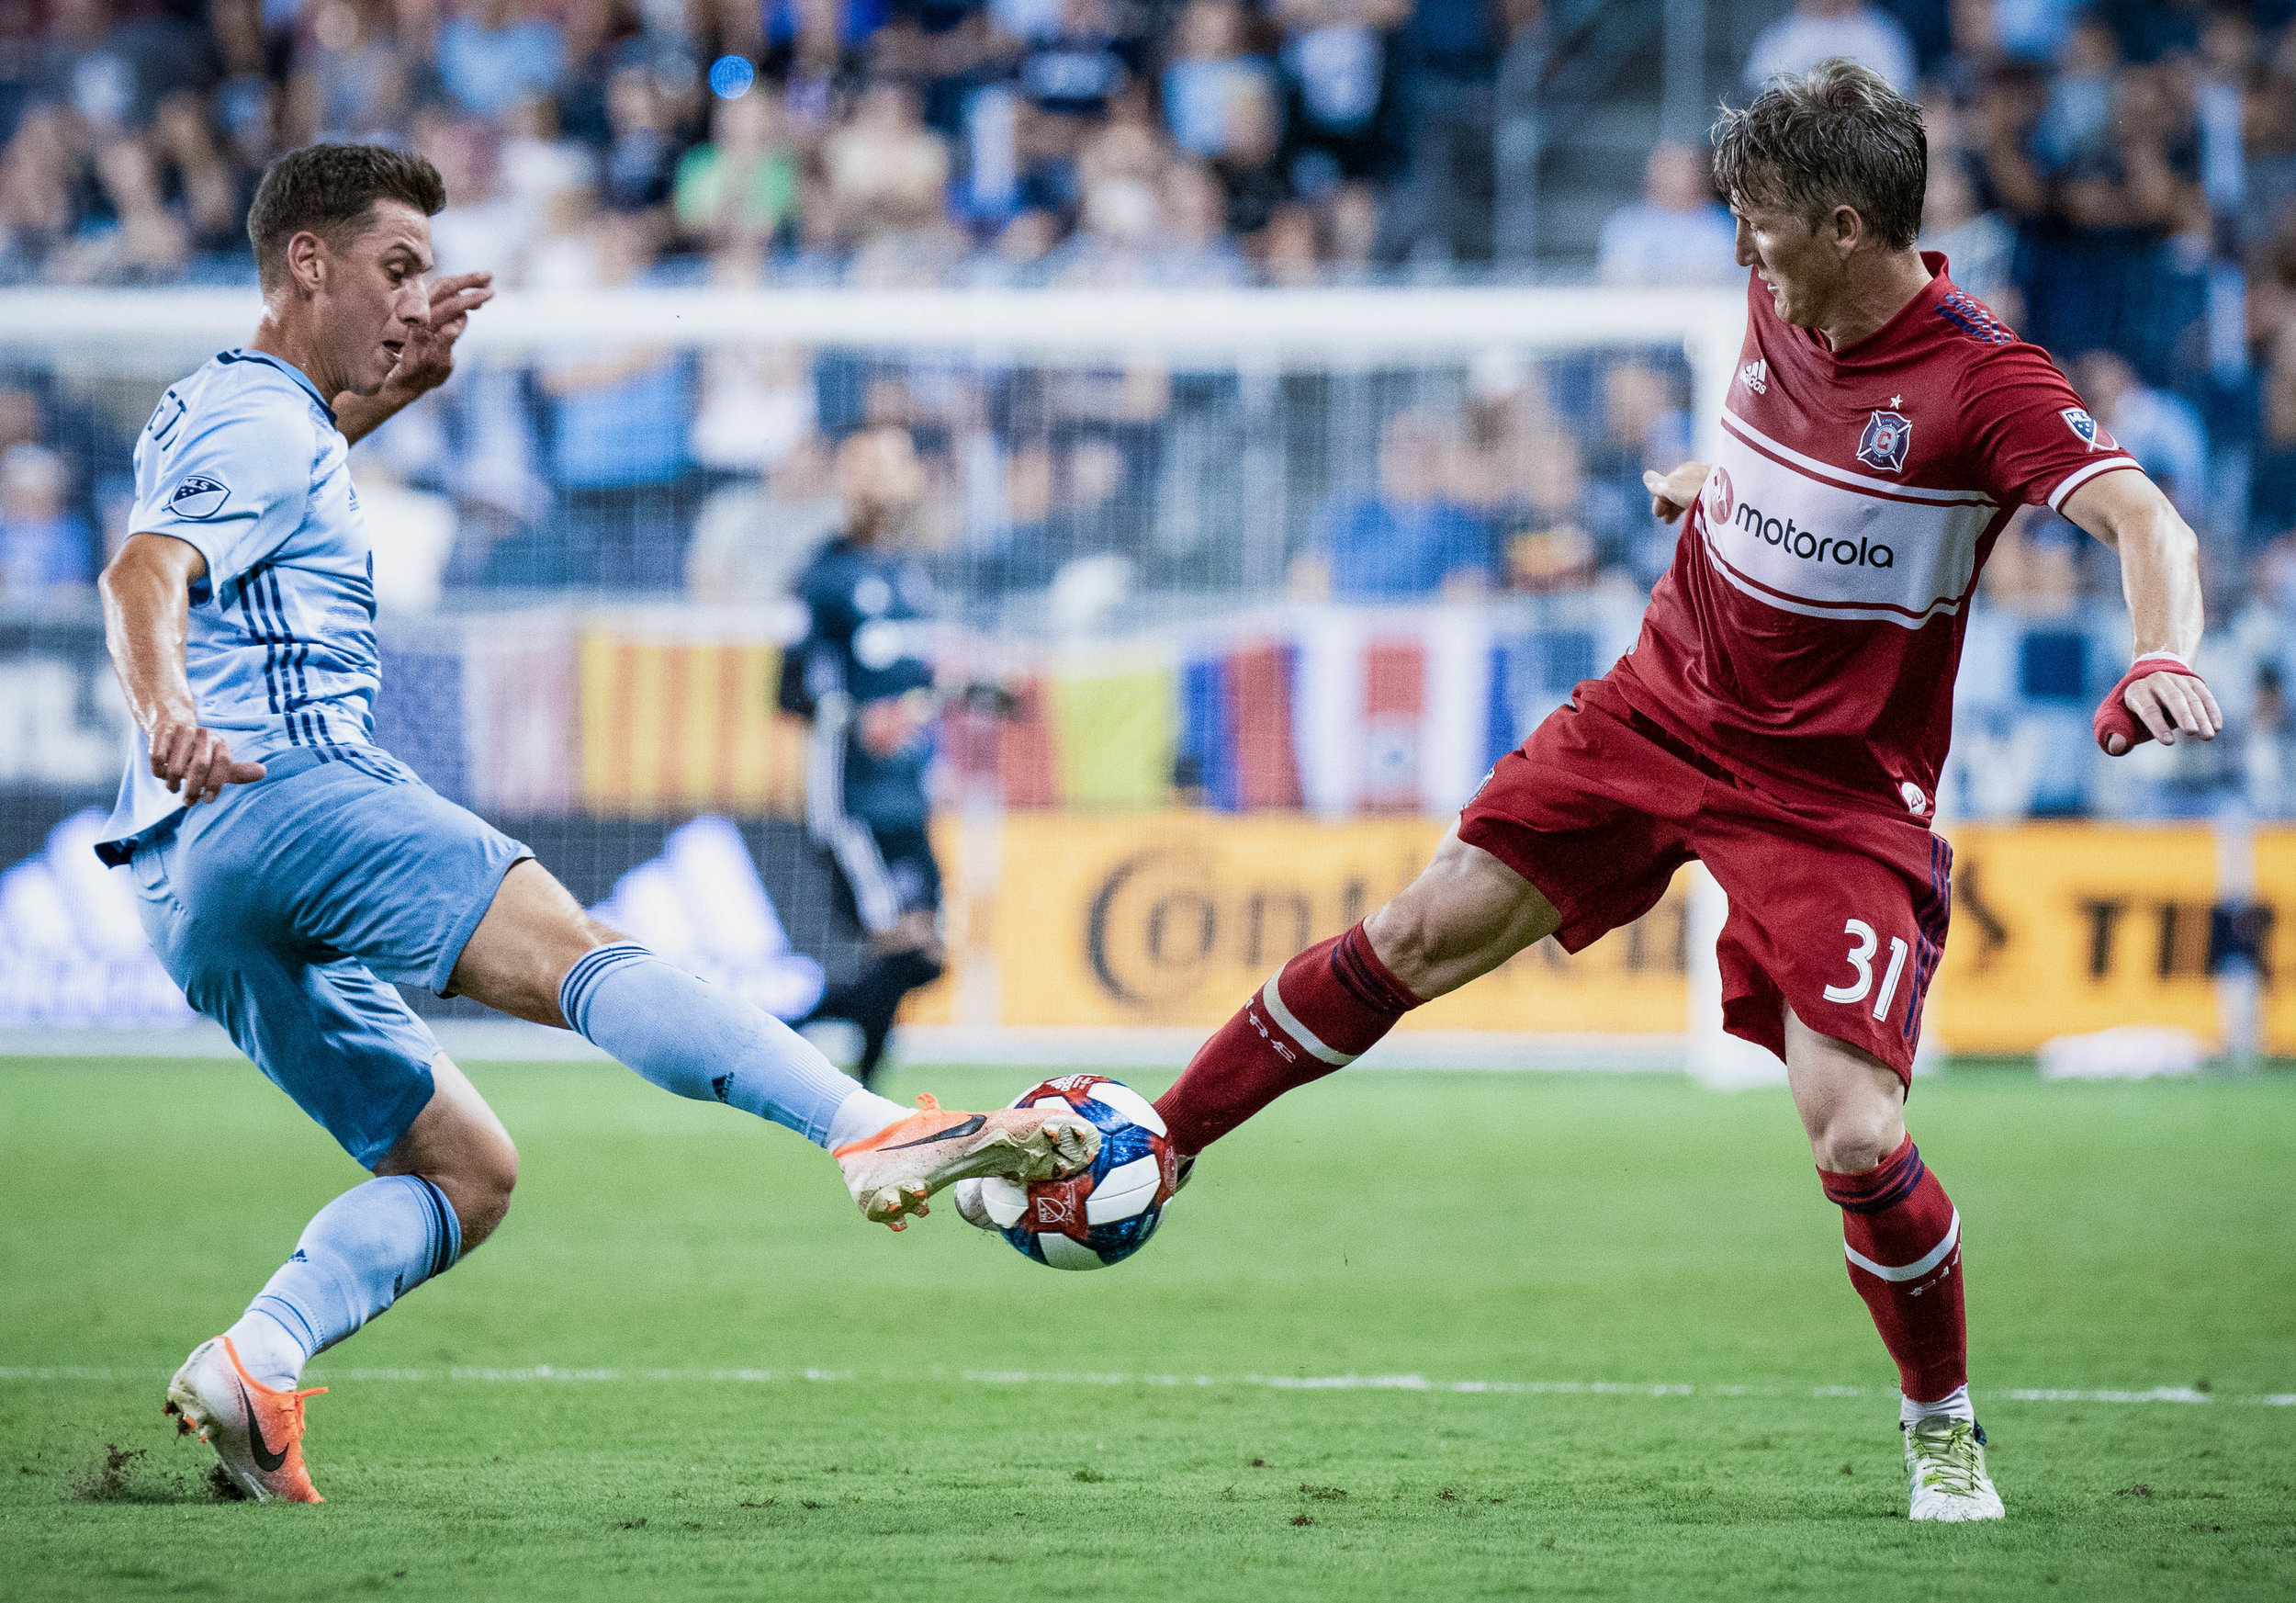 Krisztián Németh (11) fights for the ball with Bastian Schweinsteiger (31) during the Sporting Kansas City vs. Chicago Fire match on Saturday, July 6, 2019 at Children's Mercy Park in Kansas City, Kansas. Sporting defeated the Fire 1-0.